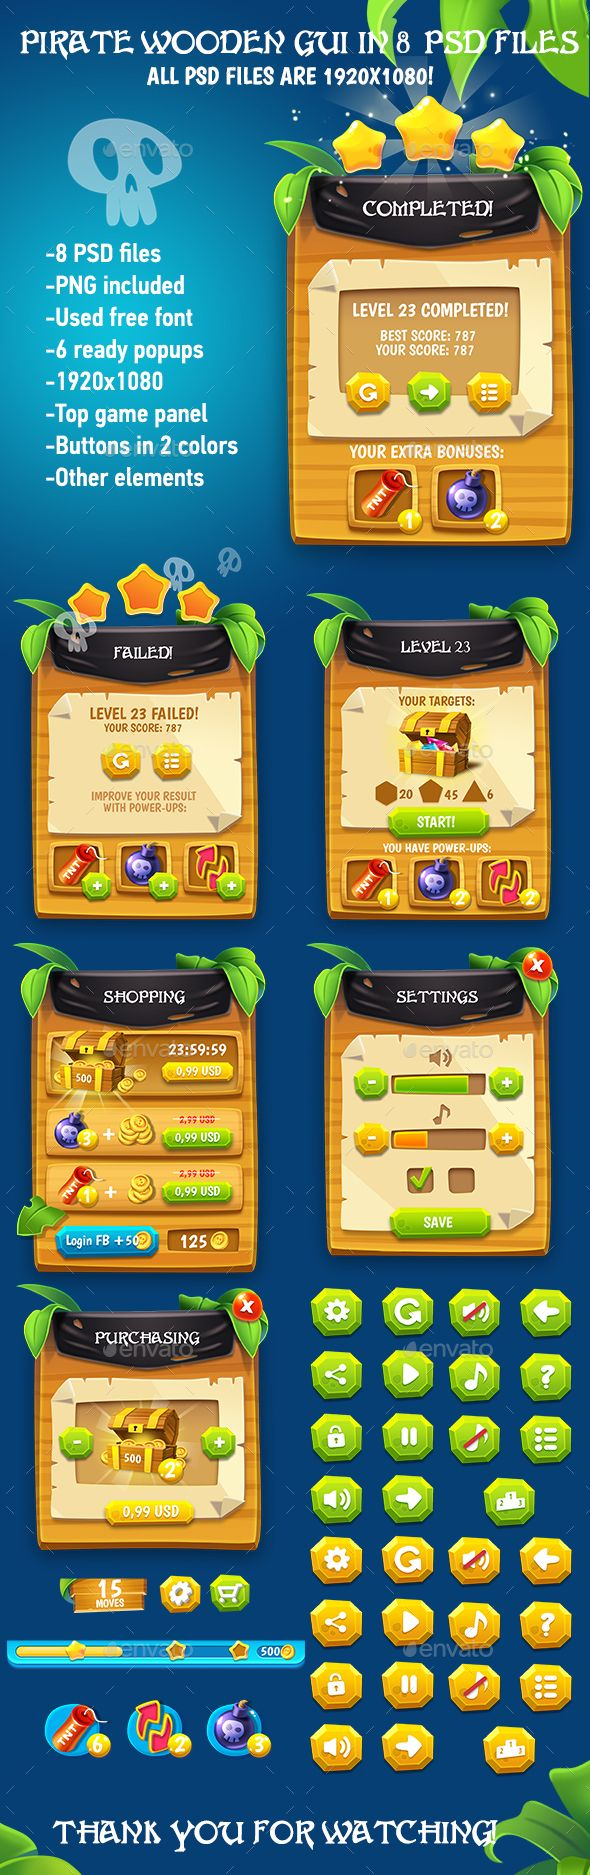 Wooden Pirate GUI Pack - User Interfaces Game Assets | Game